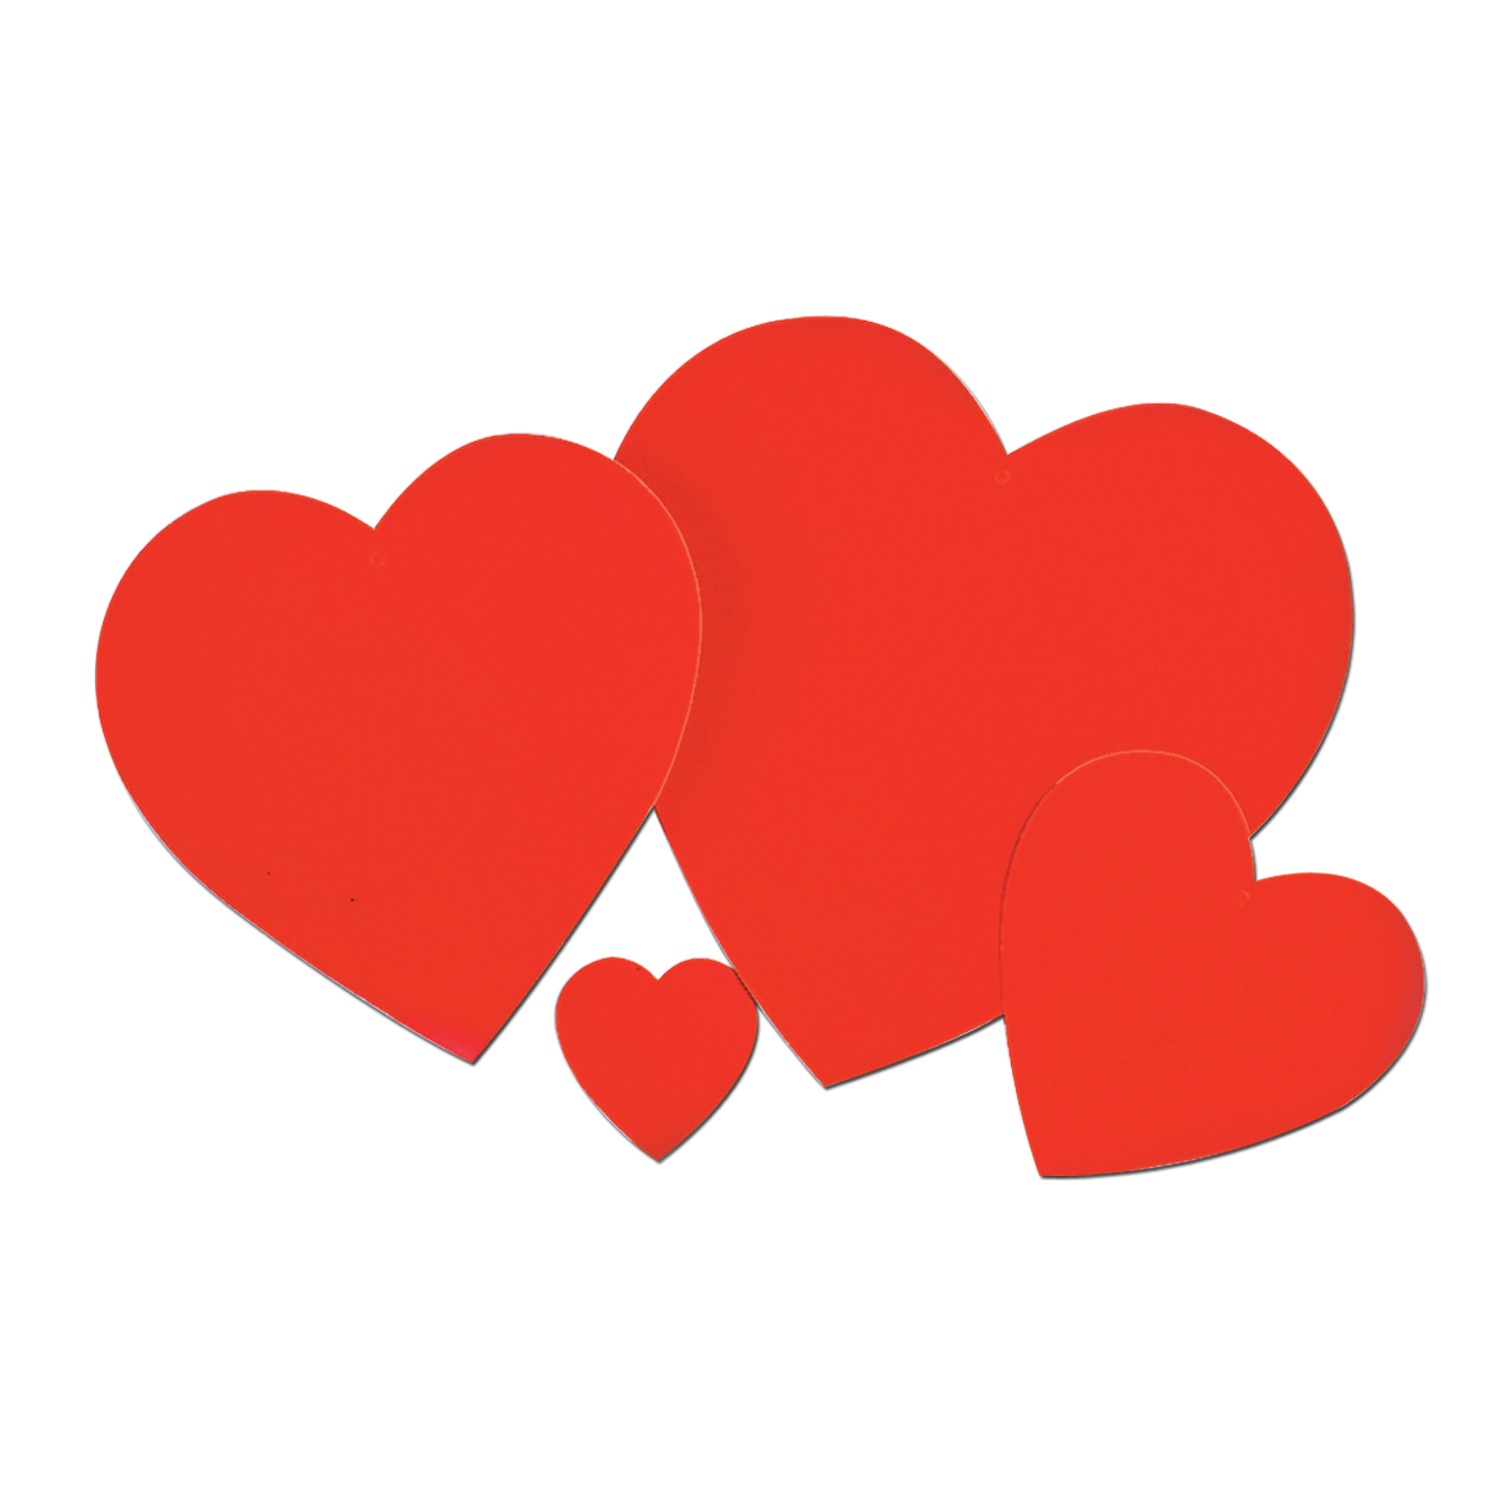 "12"" Printed Heart Cutout (Pack of 36) red, heart, valentines day, love, 12 inches, cutout"